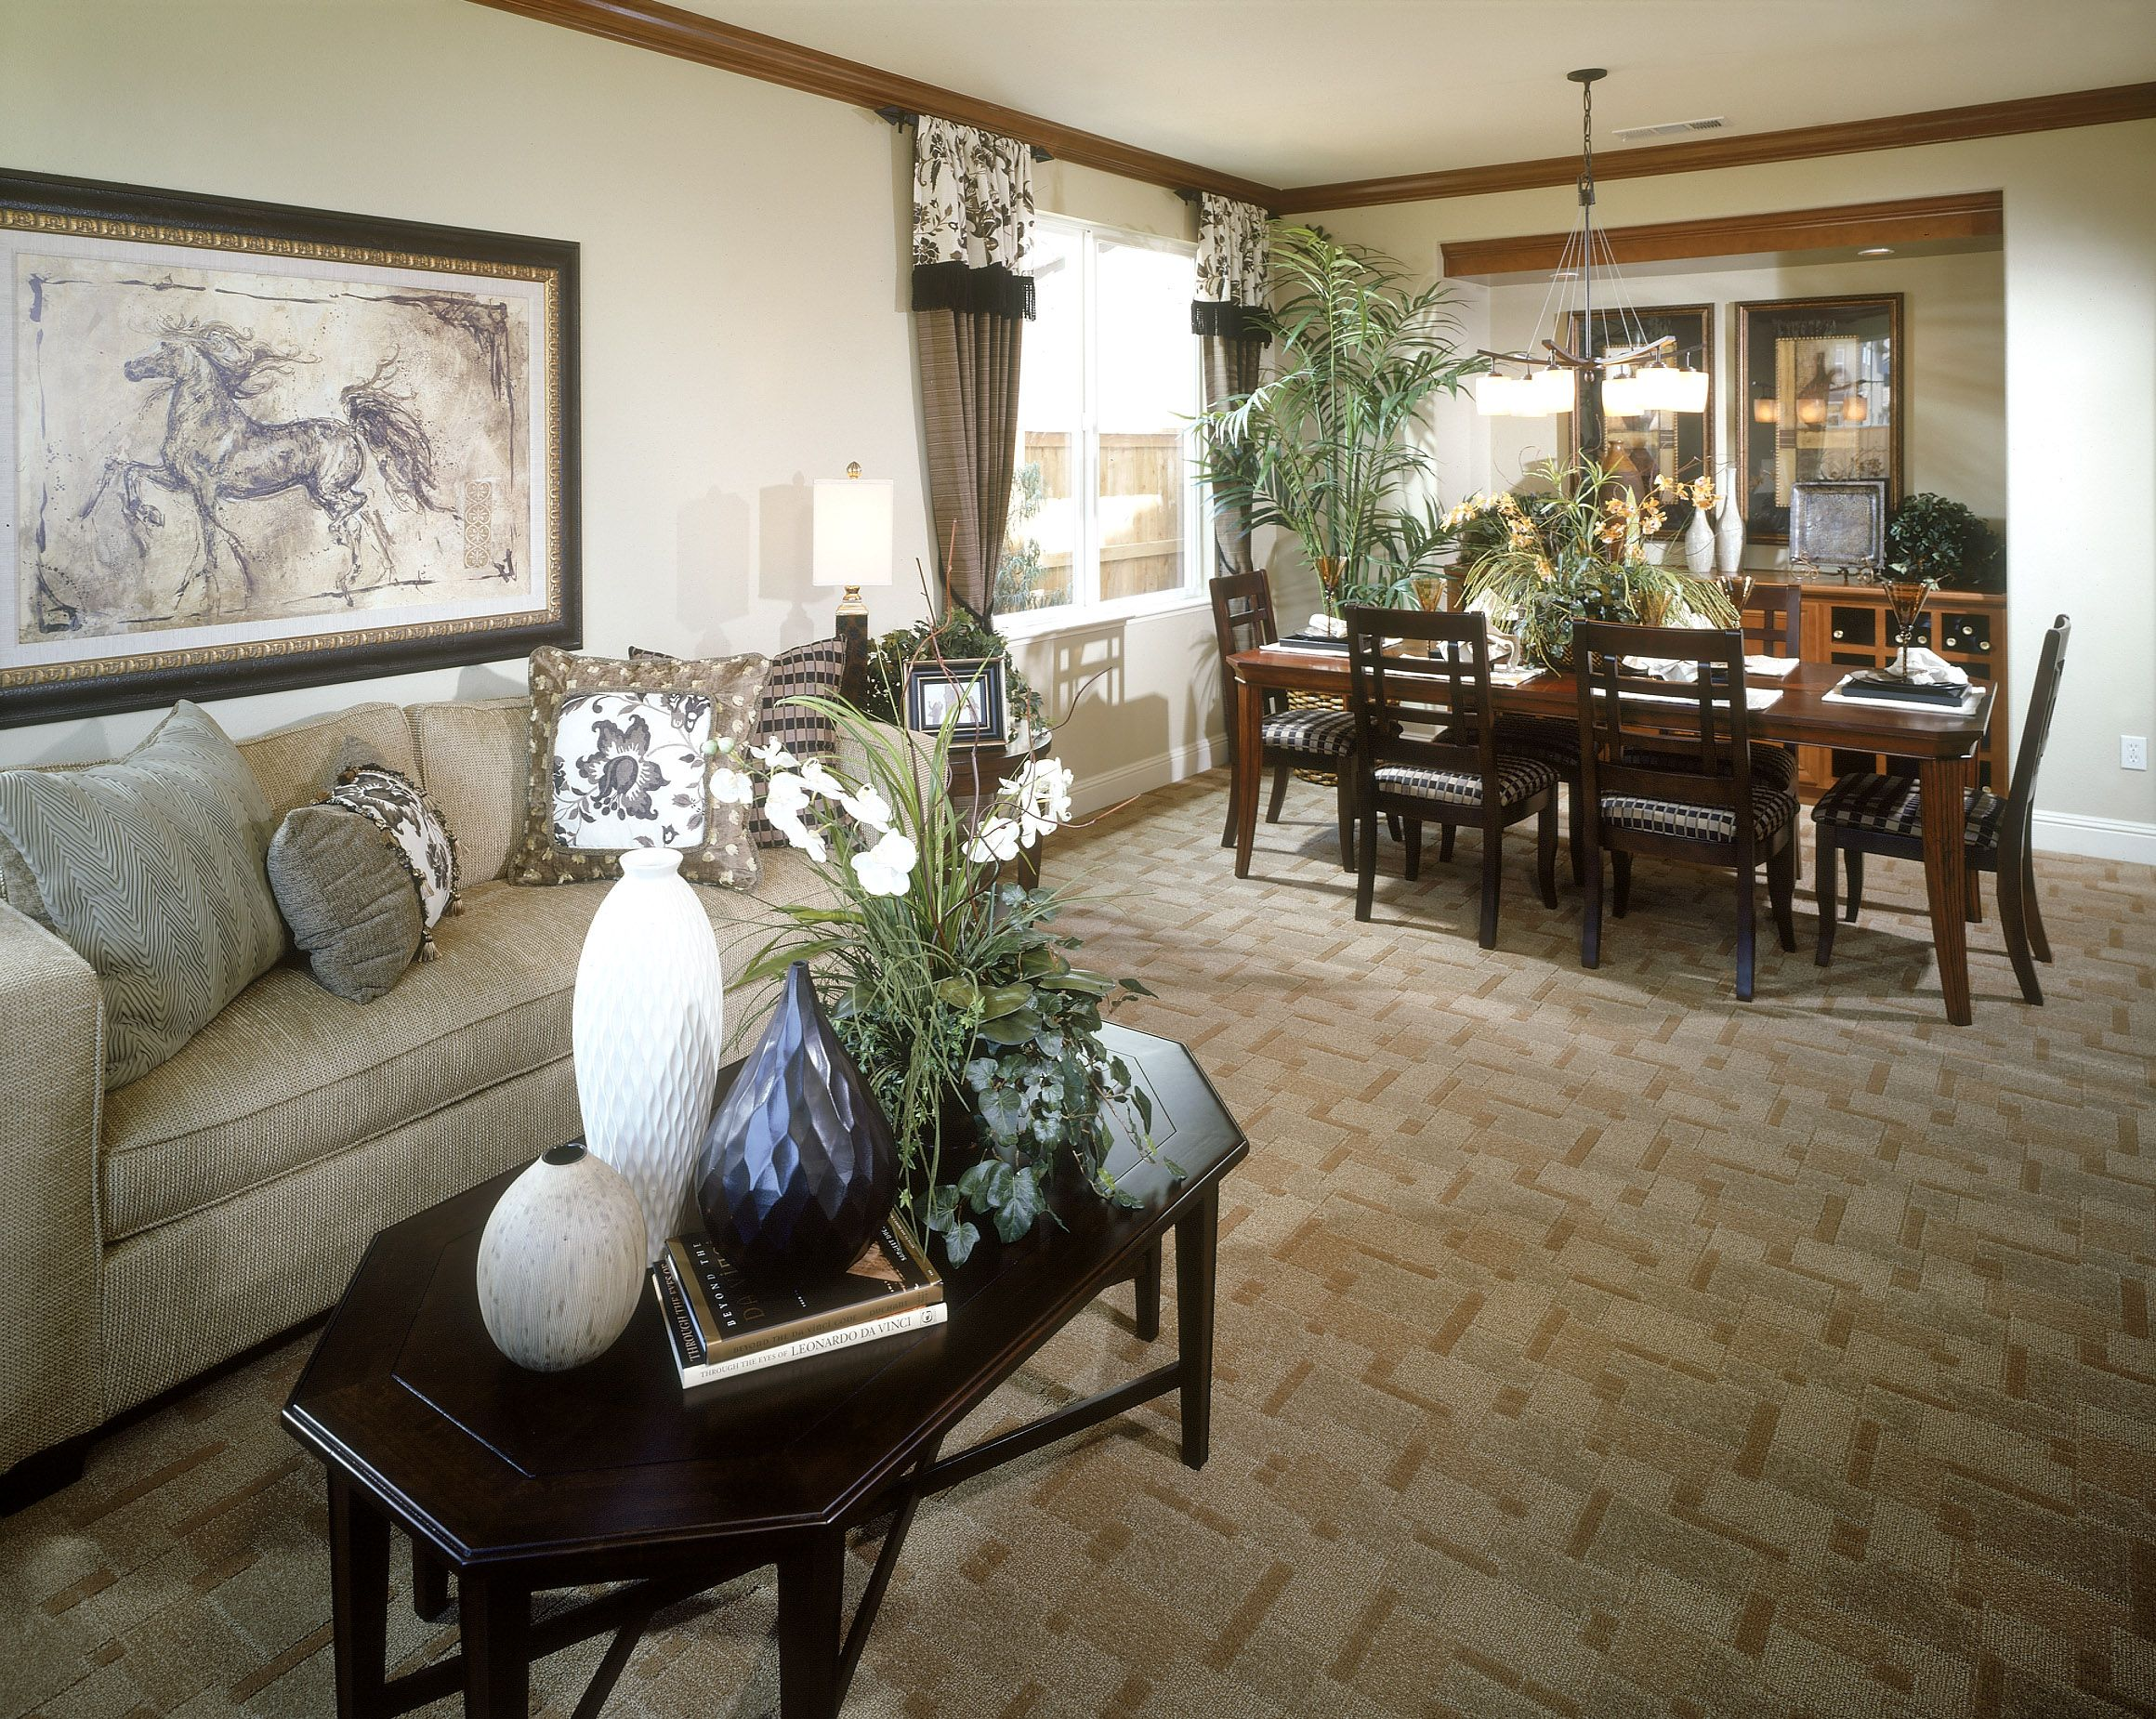 Formal living and dining room heirloom decorating ideas for Formal dining room centerpiece ideas